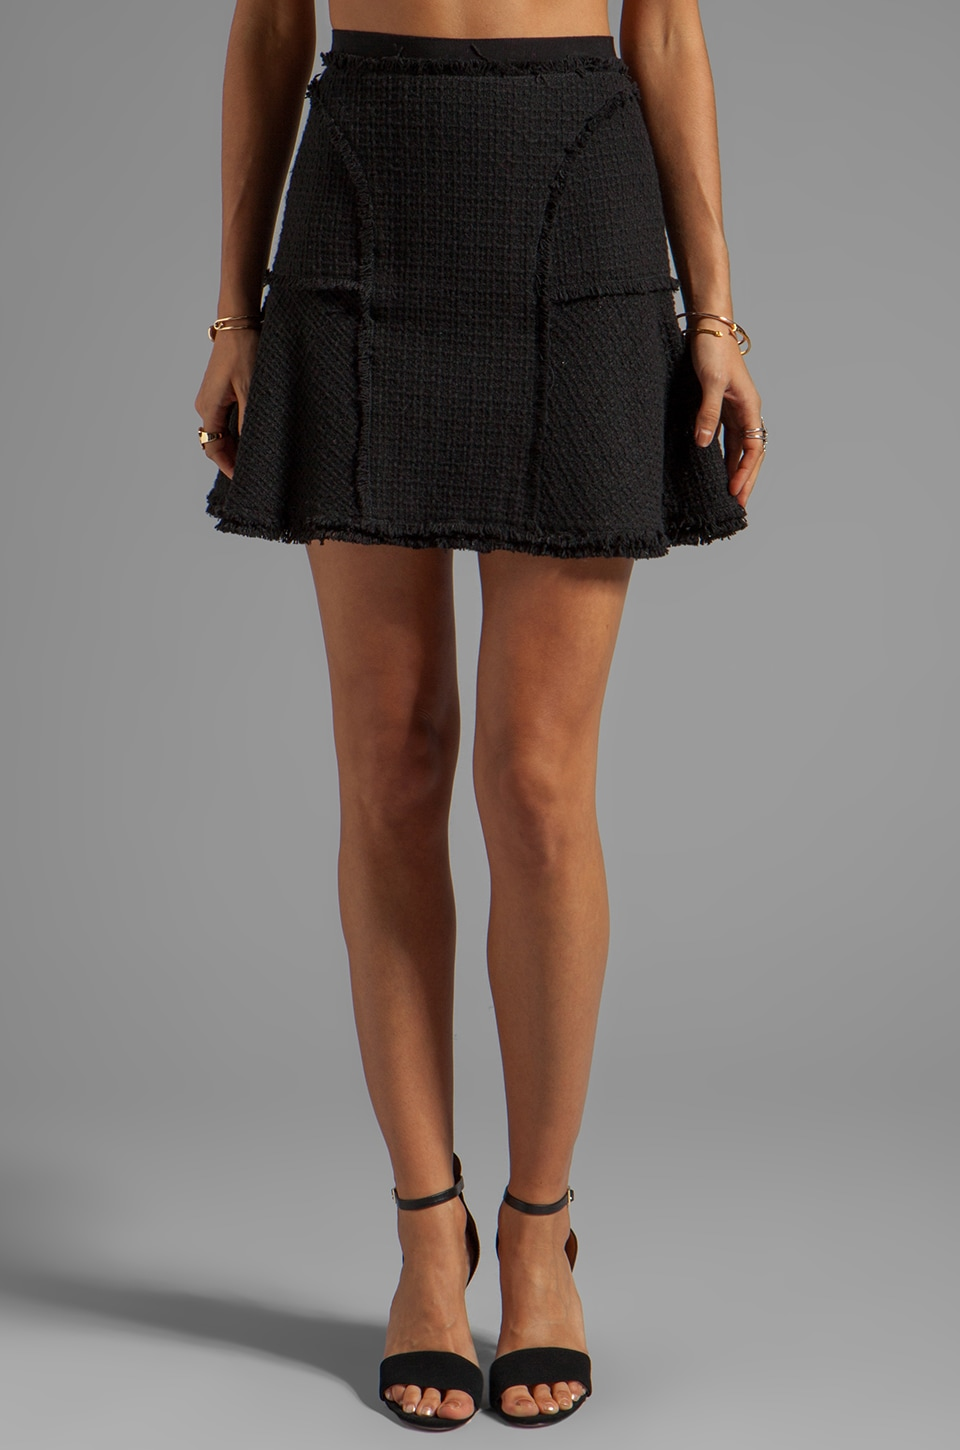 Rebecca Taylor Tweed Flounce Skirt in Black